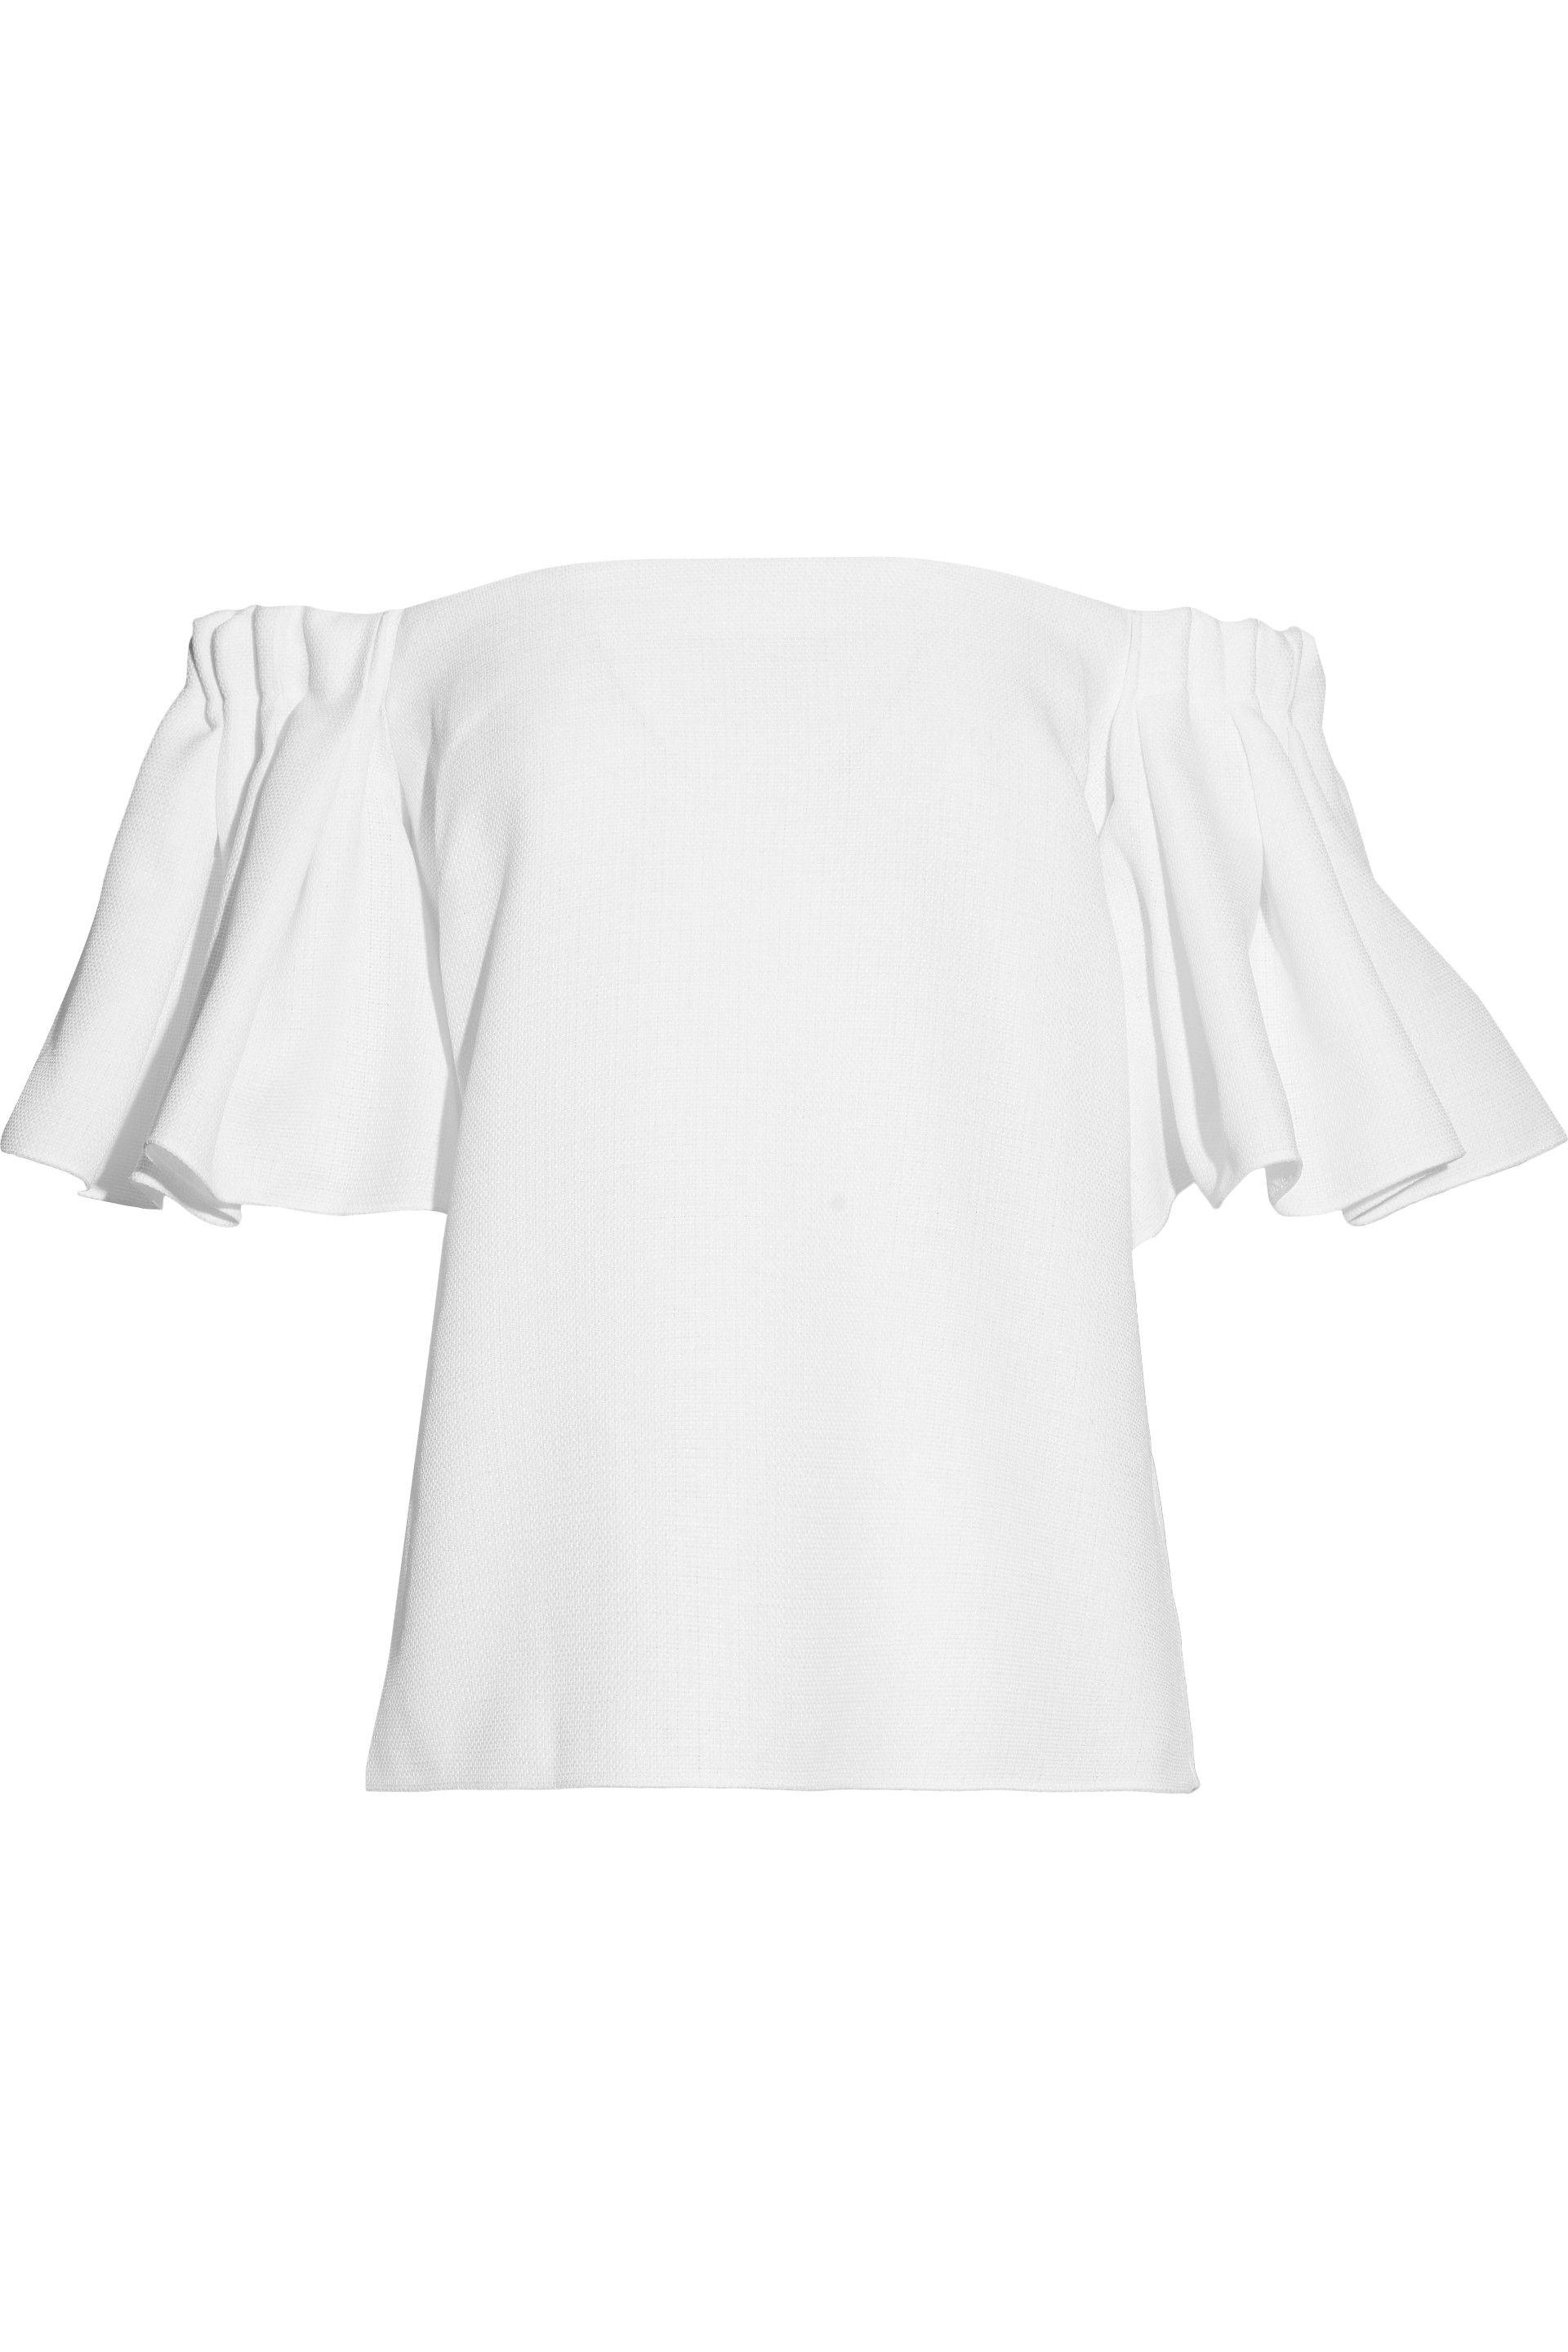 Badgley Mischka Woman Off-the-shoulder Ruffled Woven Top White Size XL Badgley Mischka Clearance With Credit Card vh2Umv